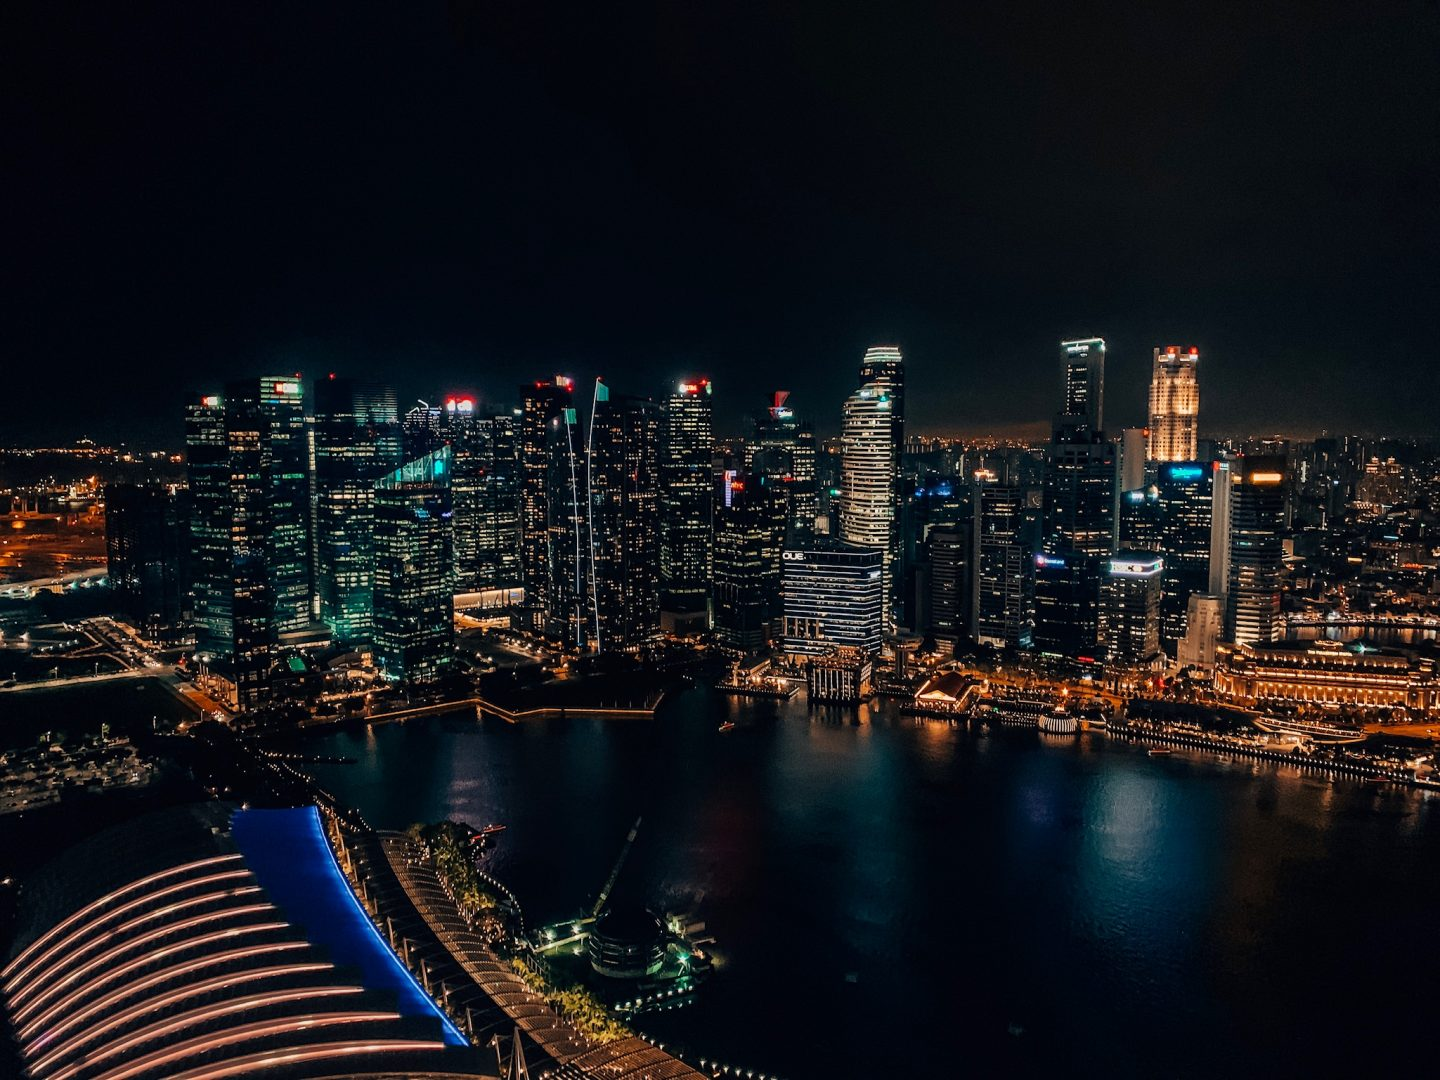 View of Singapore from the top of Marina Bay Sands' observation deck!